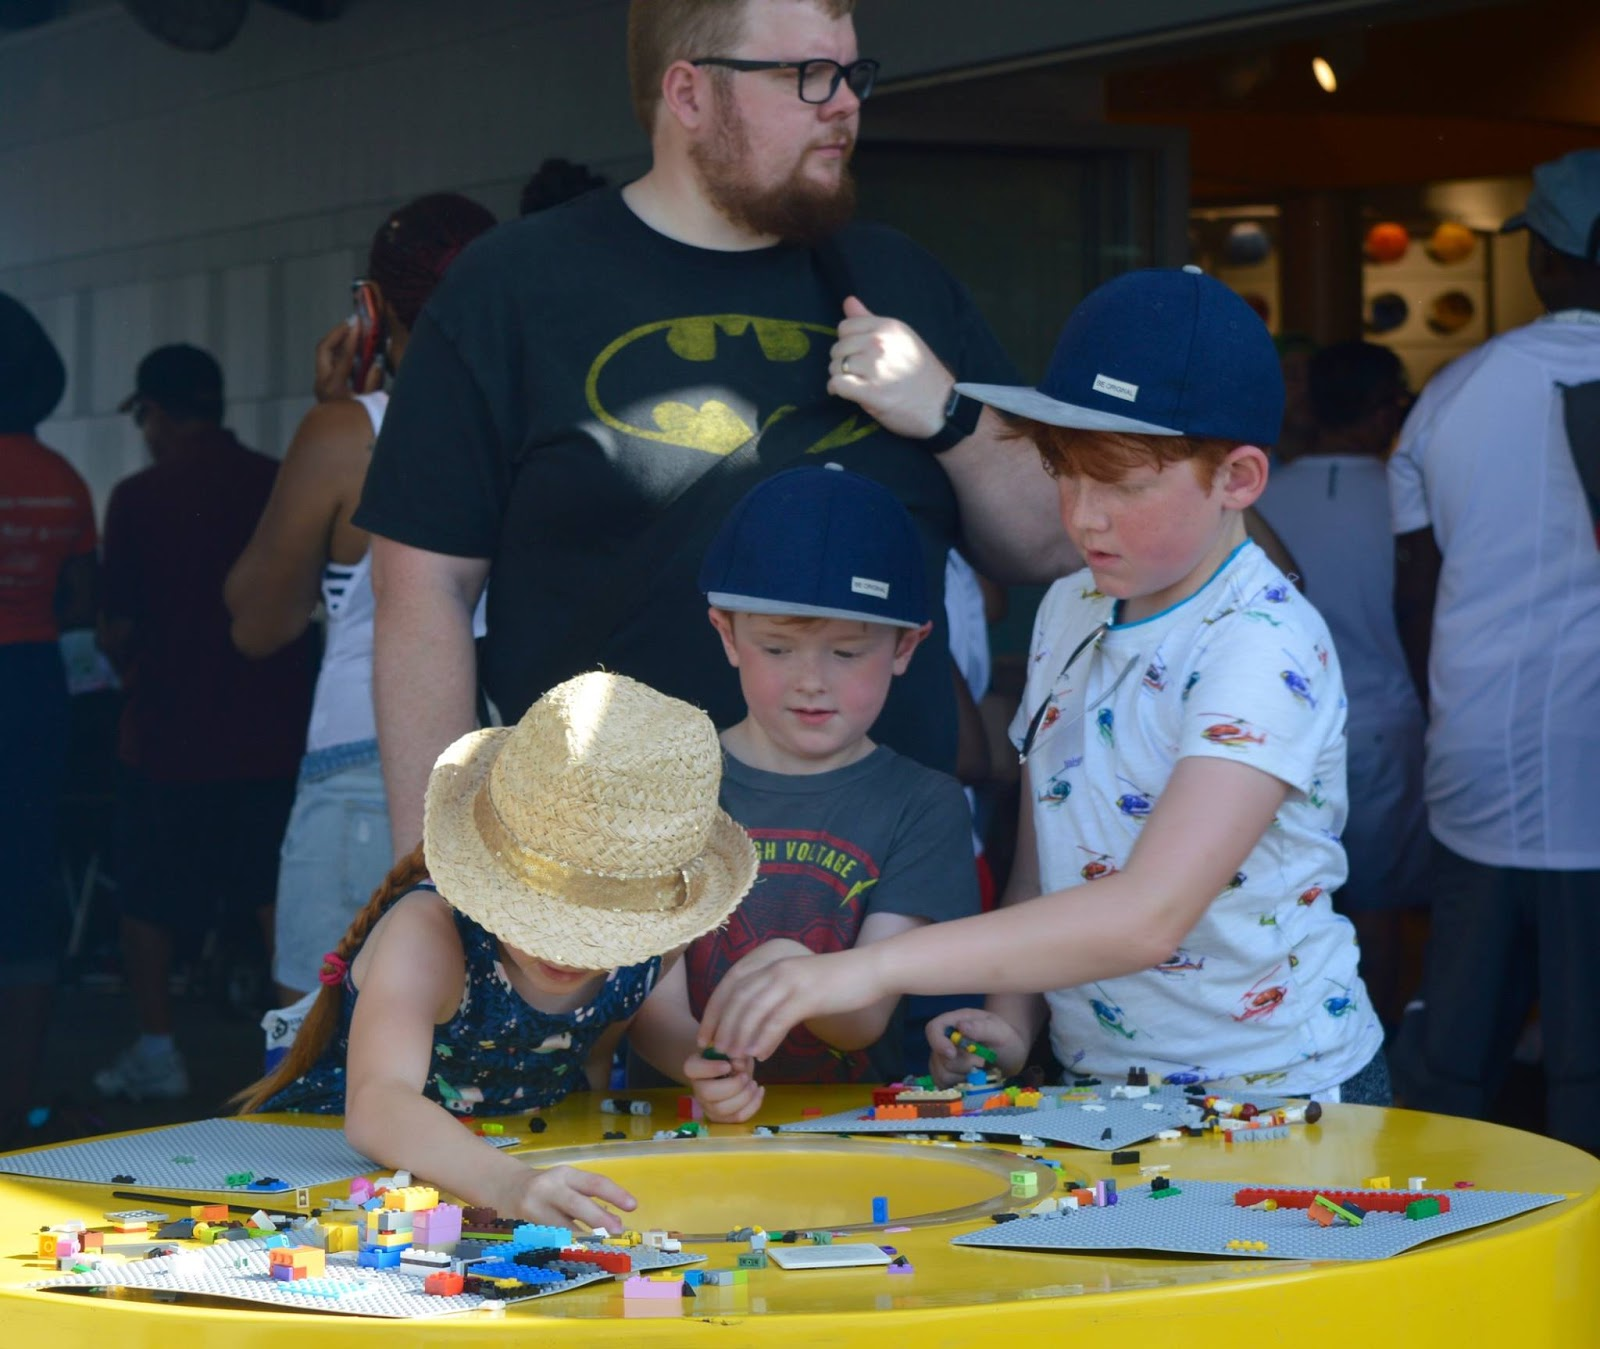 11 Things to do with Kids at Disney Springs Orlando, Florida  - LEGO store building